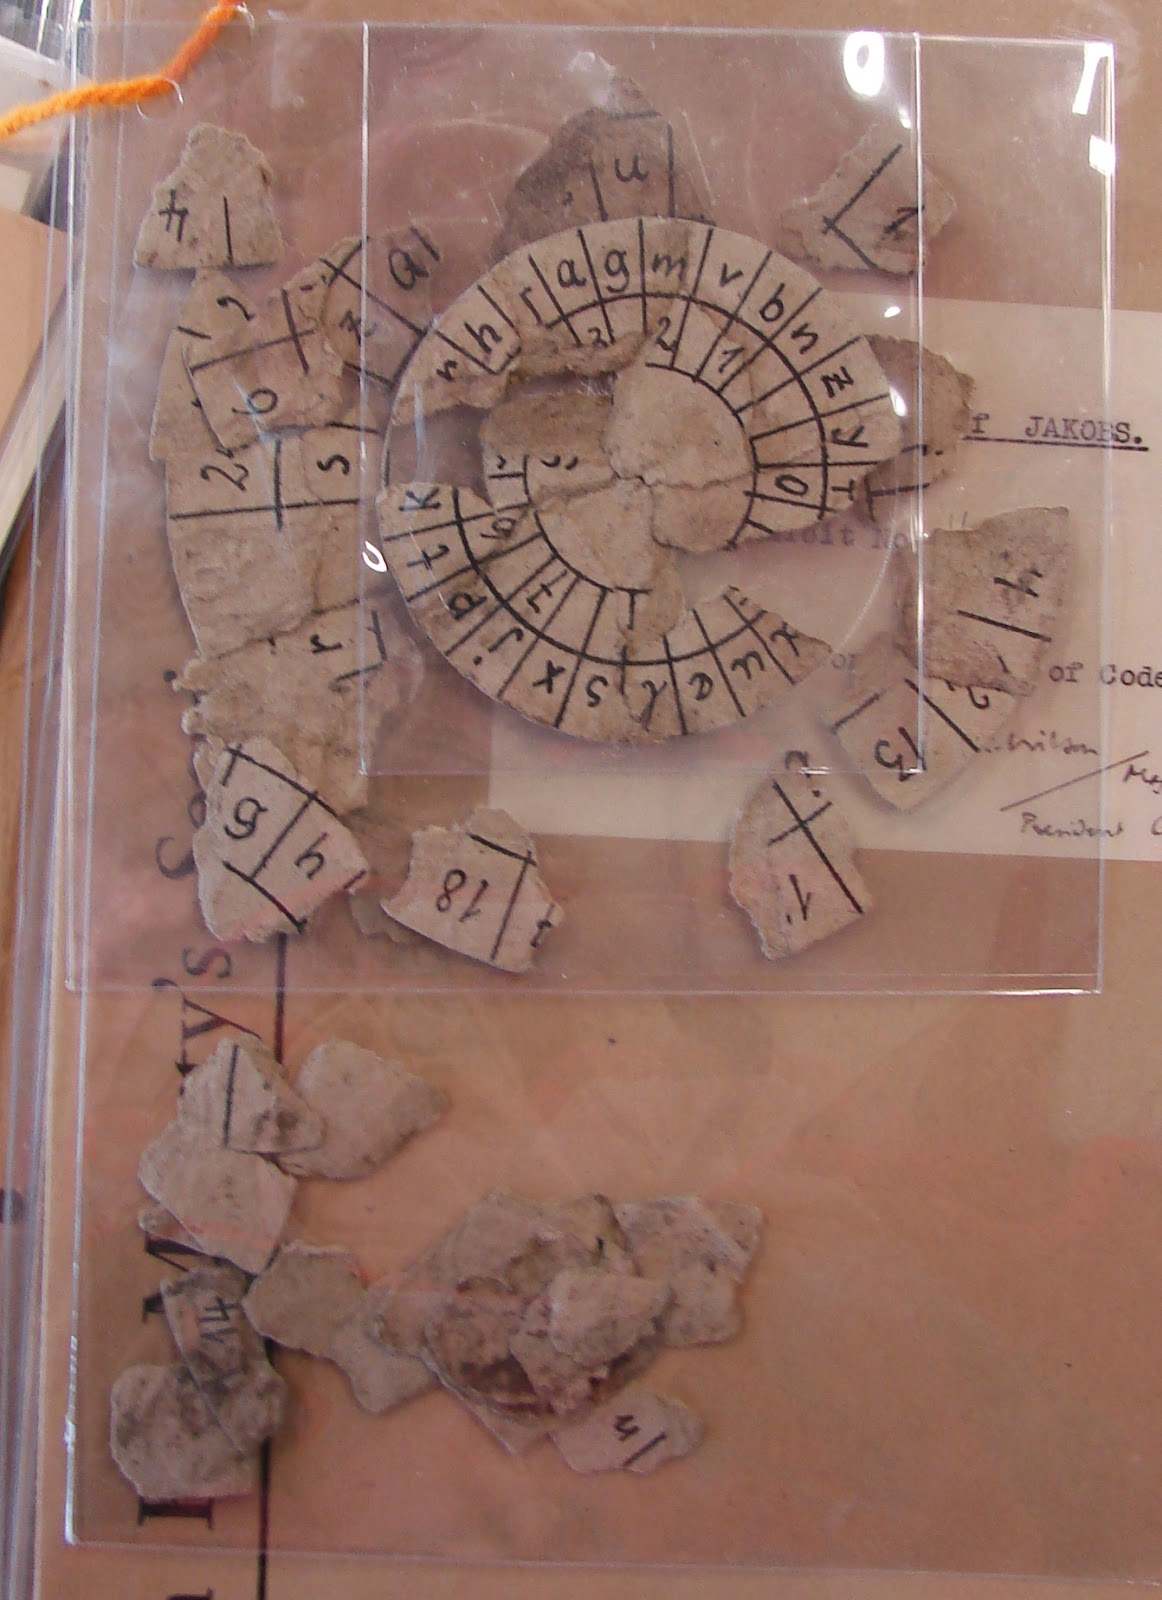 Josef Jakobs' cipher disc fragments held at the National Archives.